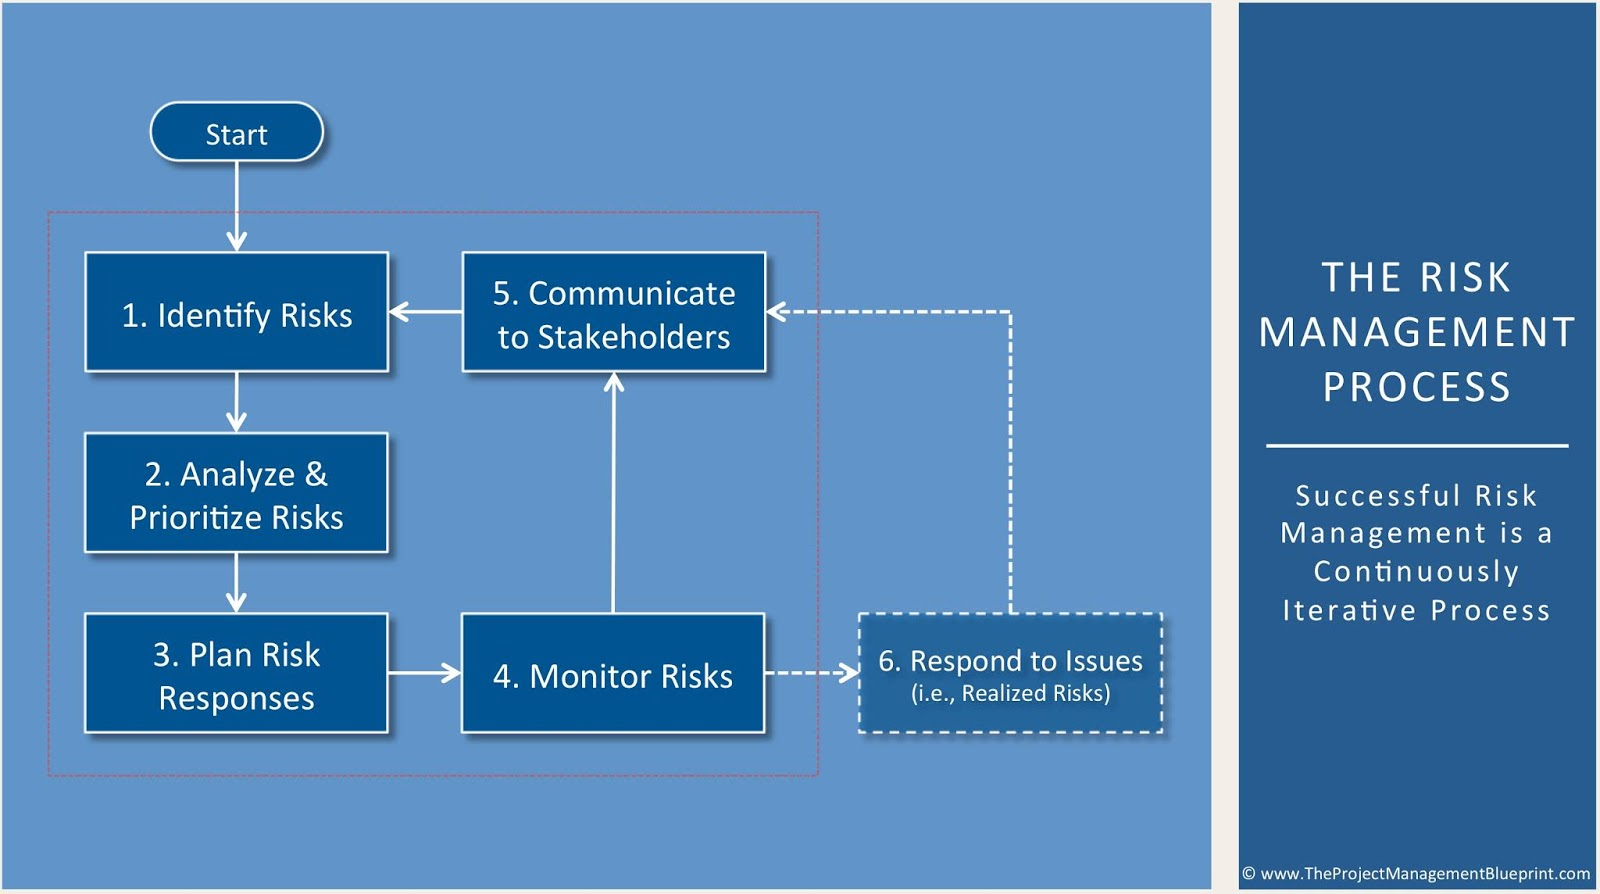 What are the five steps in risk management process